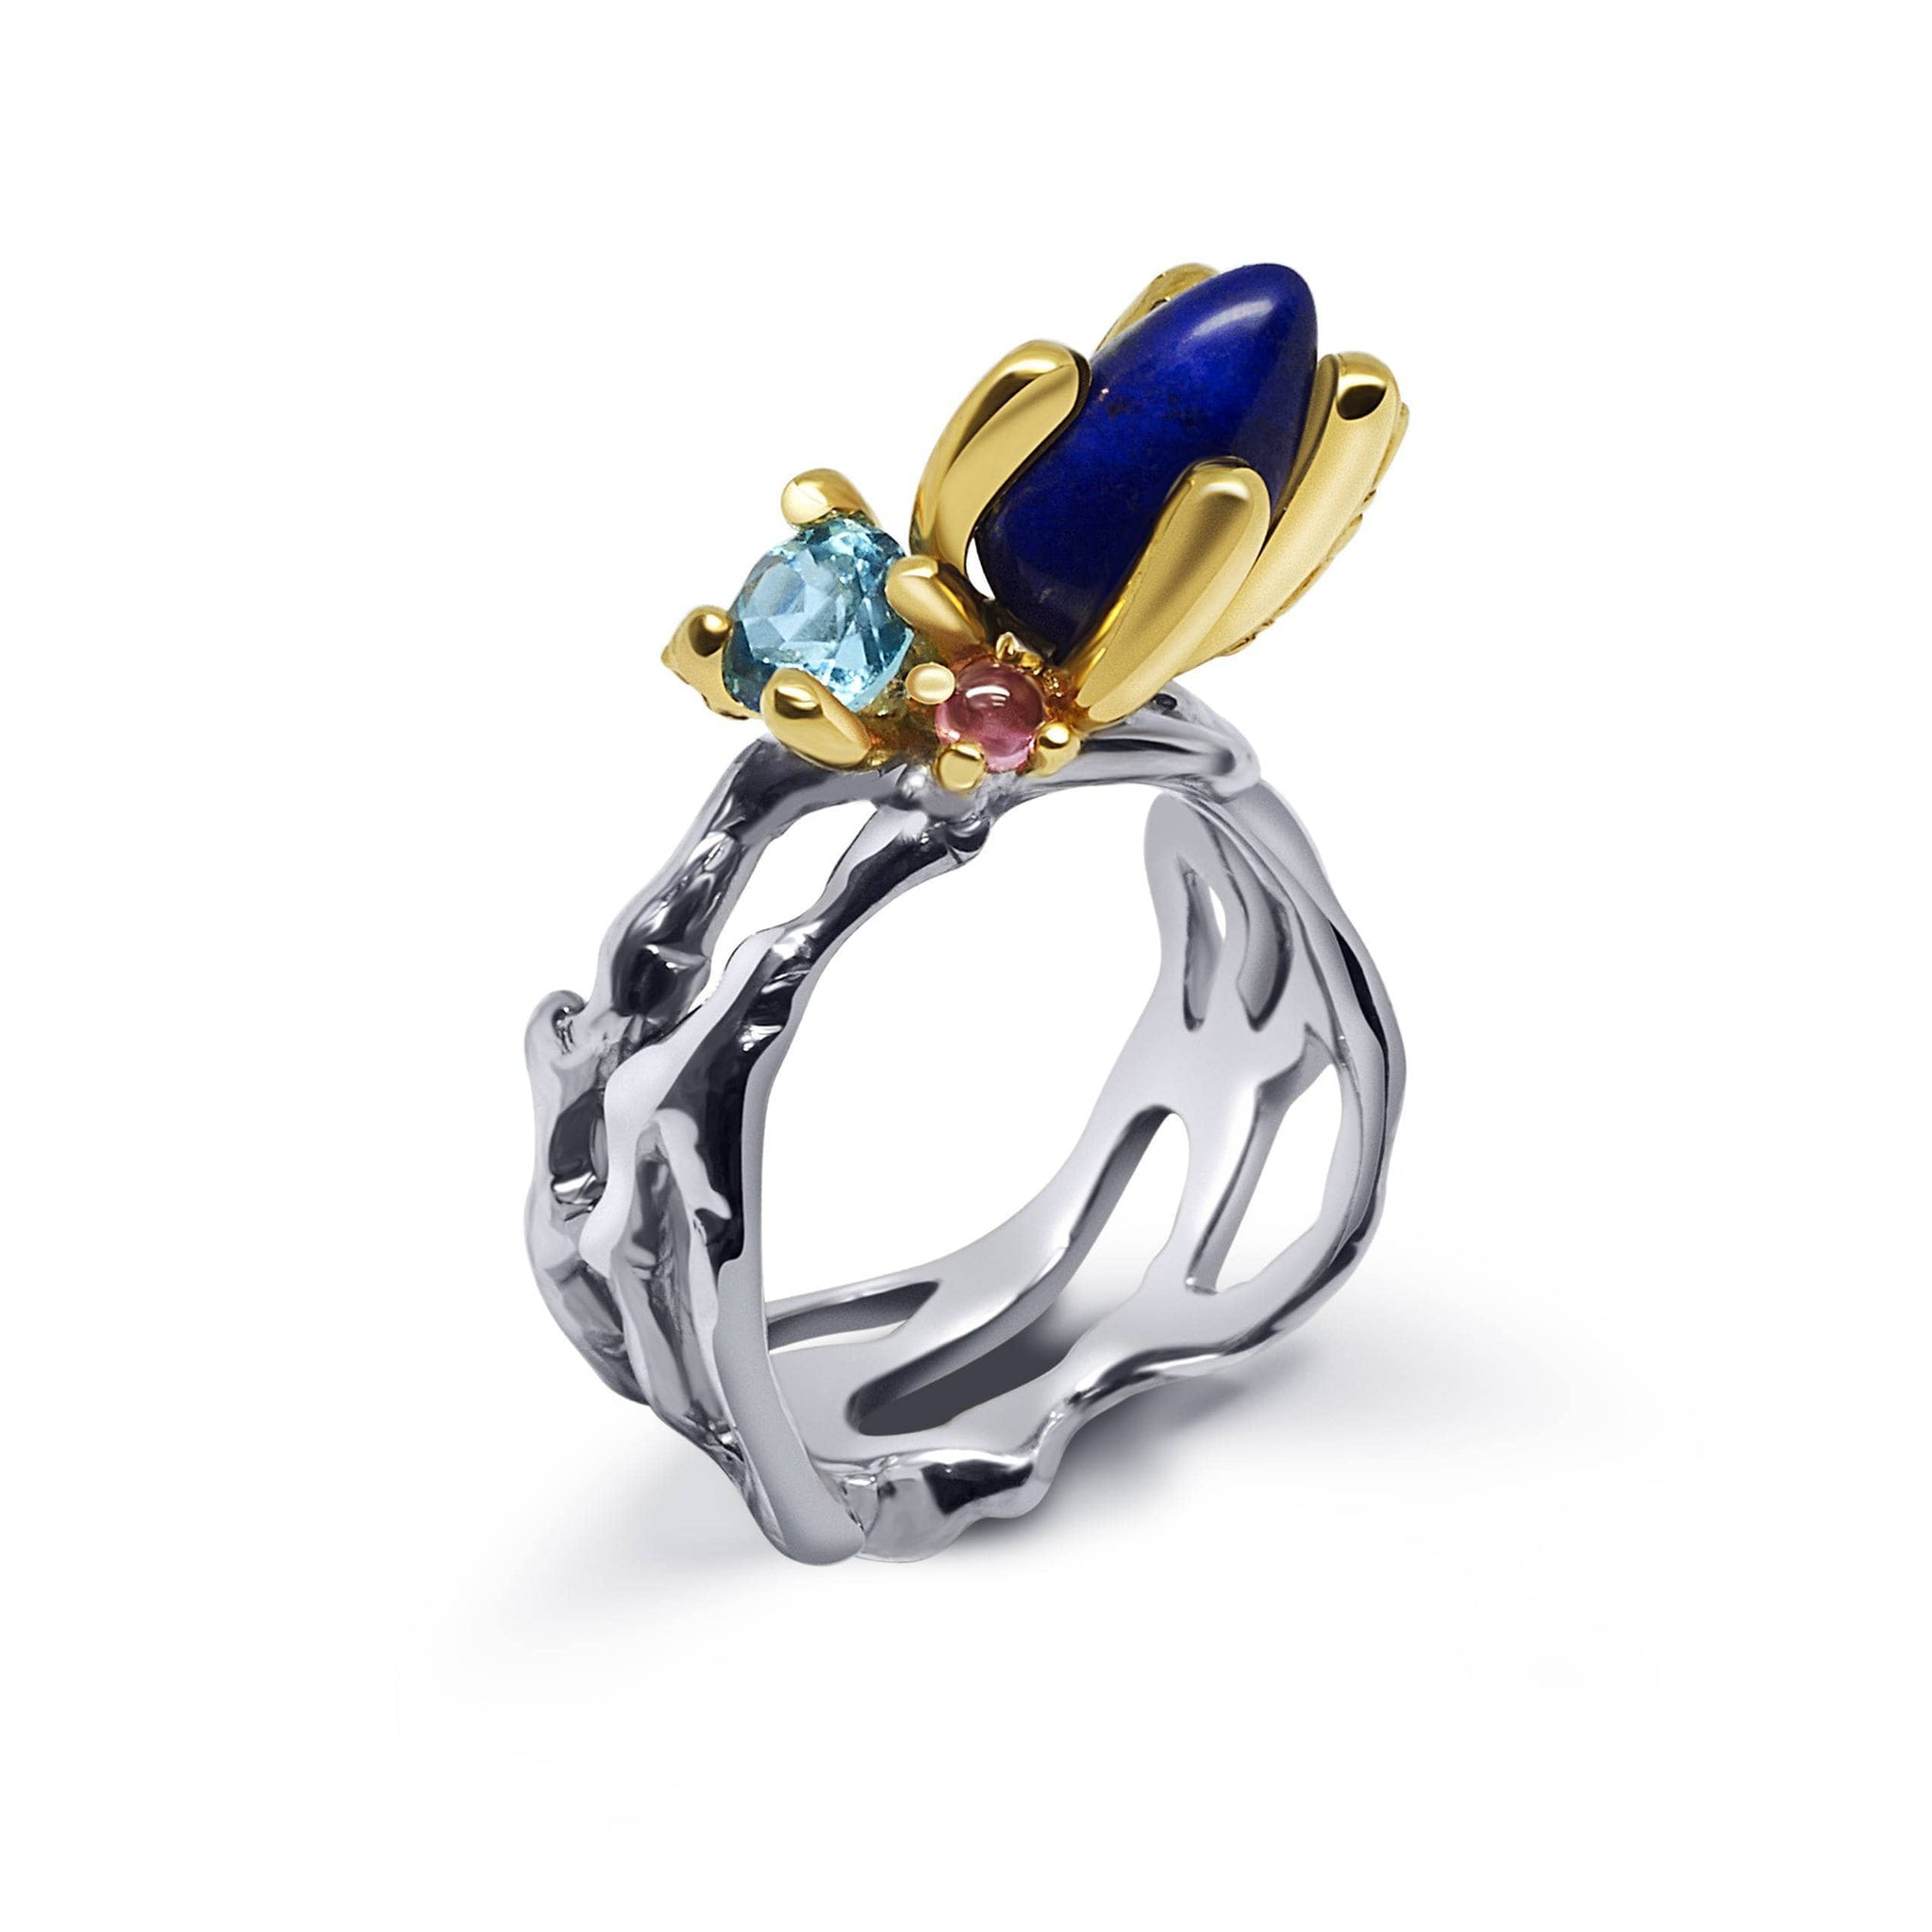 Liana Unique Ring with Lapis Lazuli and Topaz - Rara Jewelry